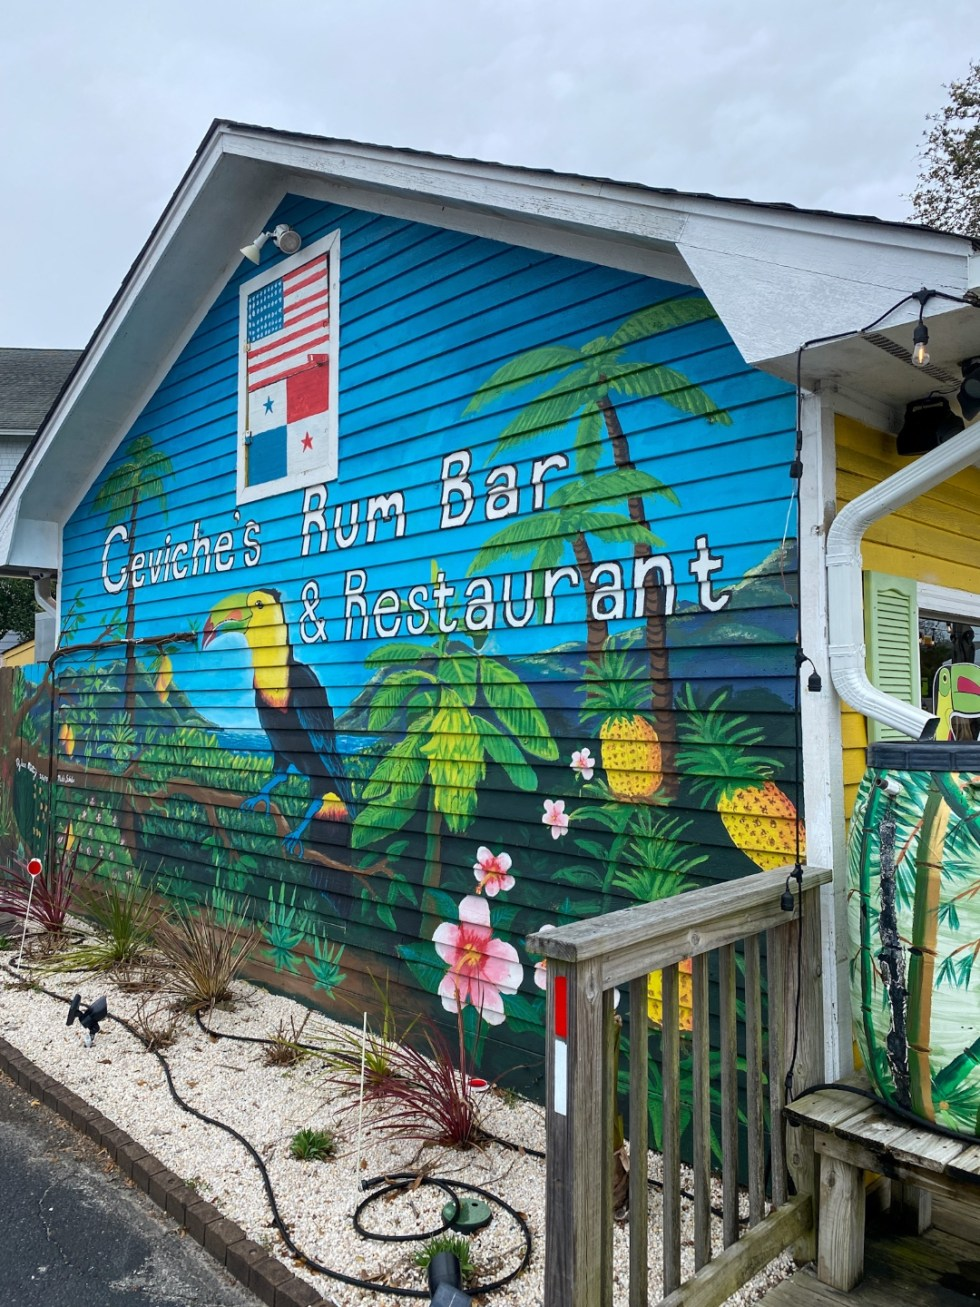 A Spring Weekend in Wilmington, NC: the Best Things to Do - I'm Fixin' To - @imfixintoblog |Weekend in Wilmington by popular NC travel blog, I'm Fixin' To: image of Ceviche's Rum Bar and Restaurant.